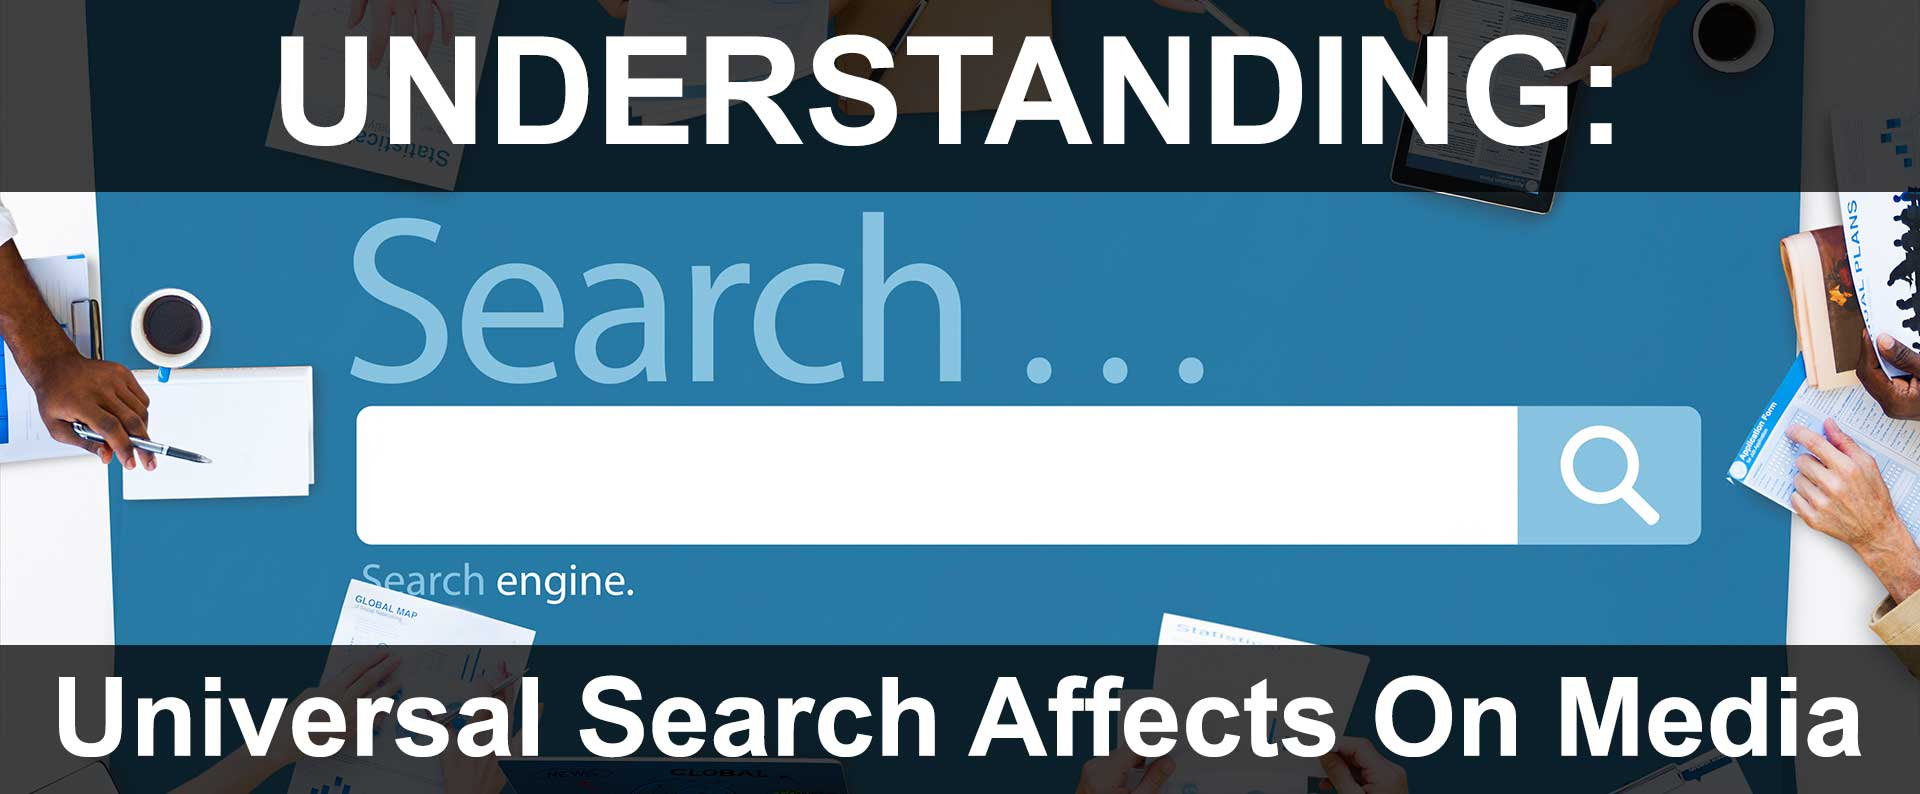 Understanding Universal Search For Optimal Media Marketing